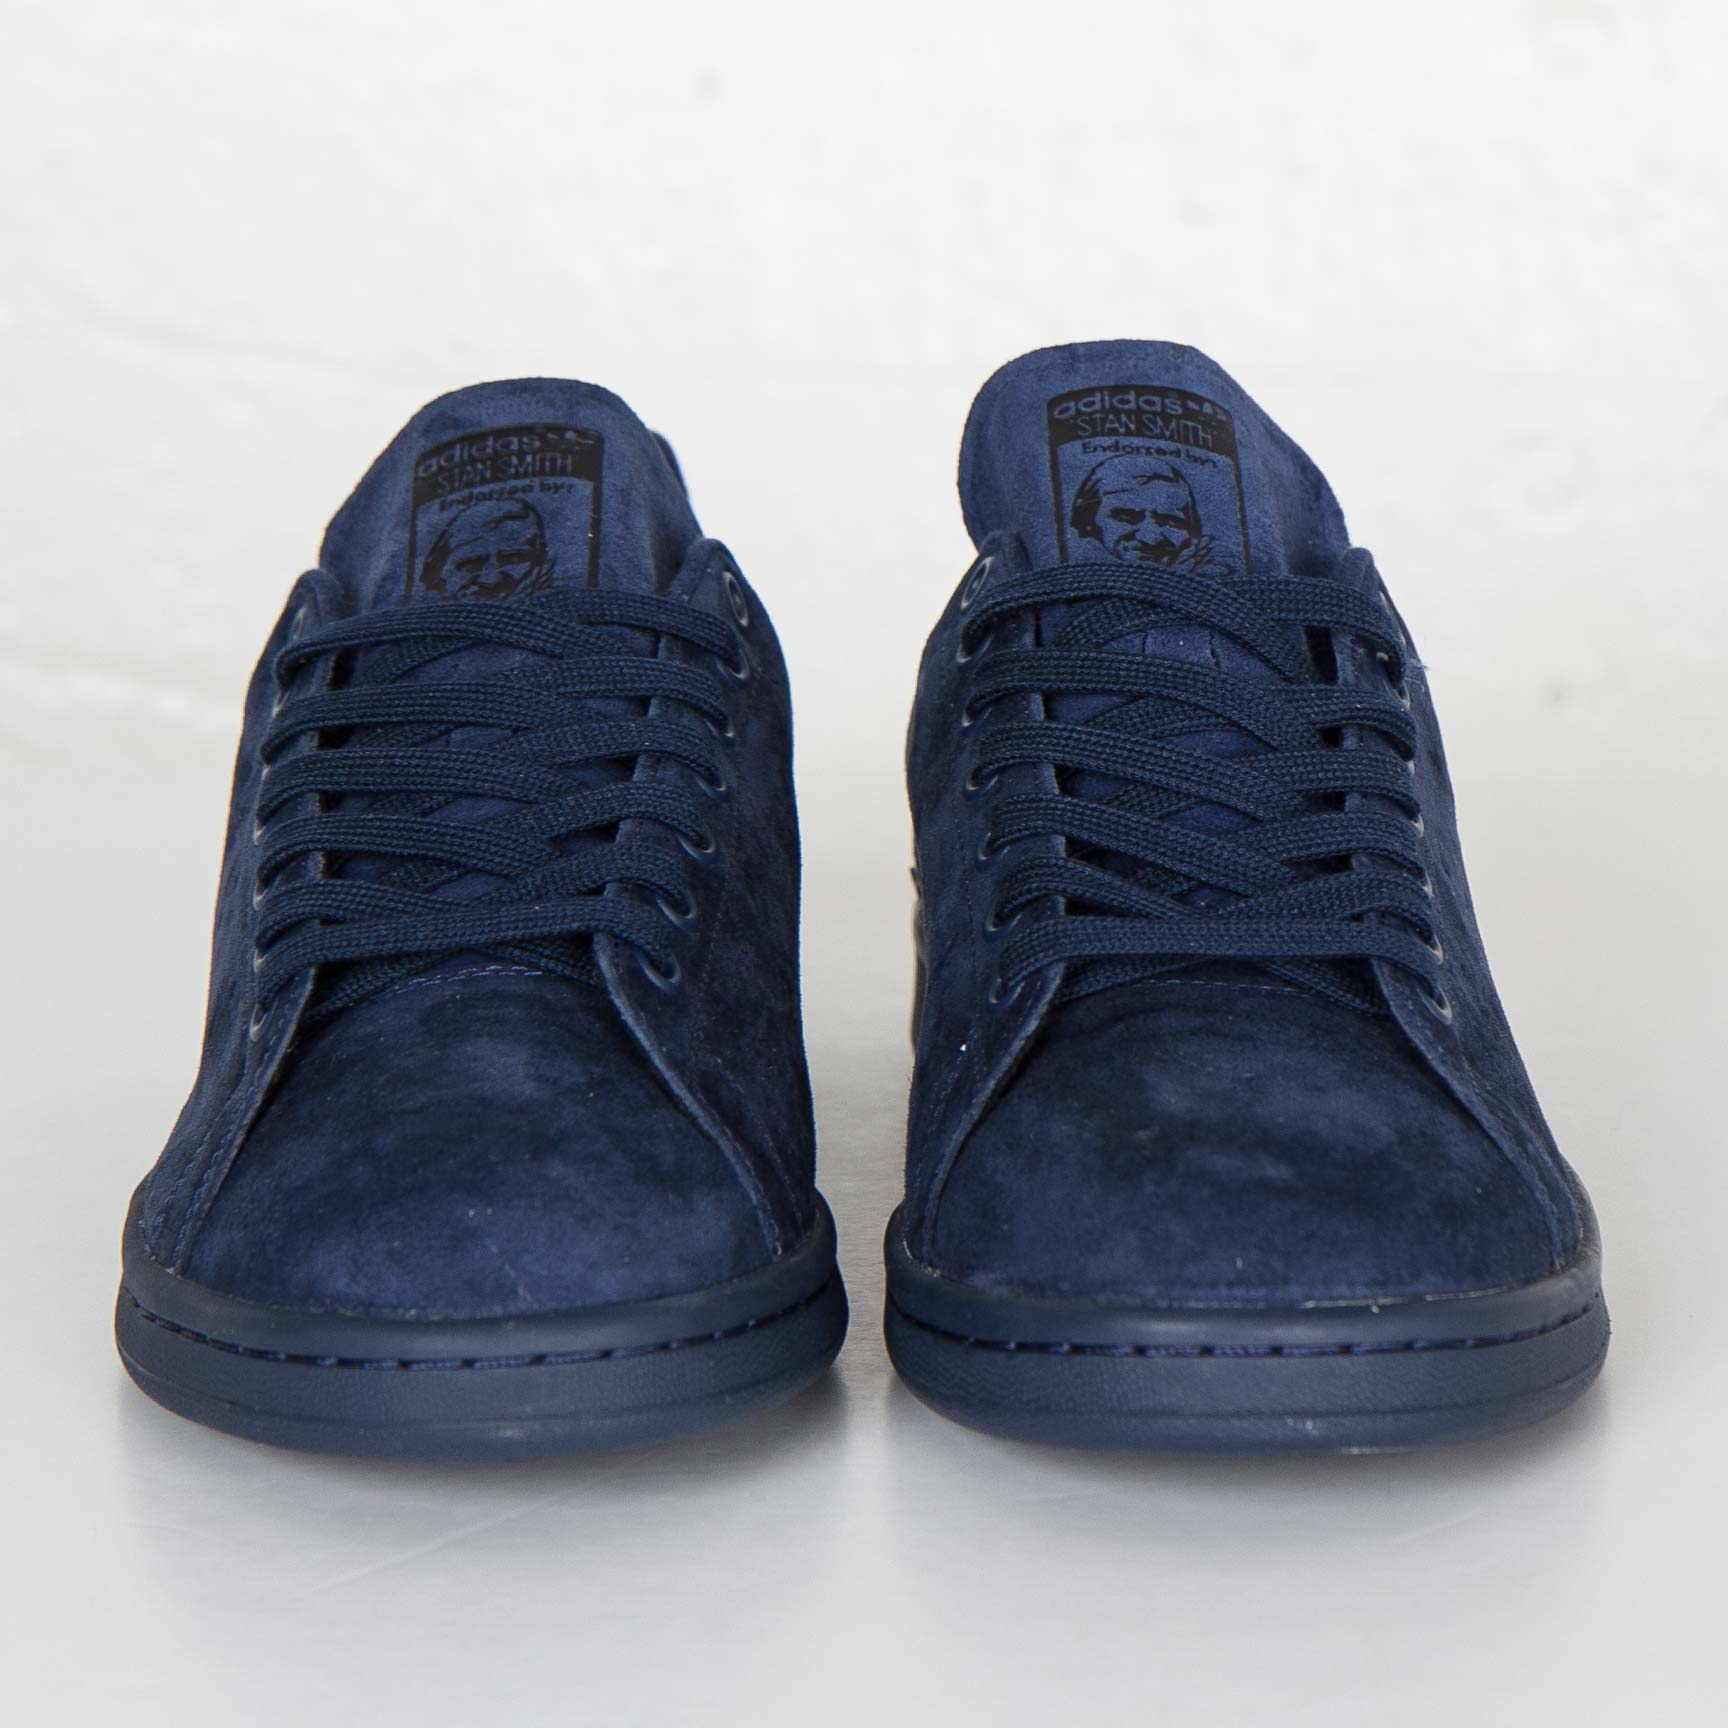 adidas Stan Smith - S75107 - Sneakersnstuff  c2f4a49d3